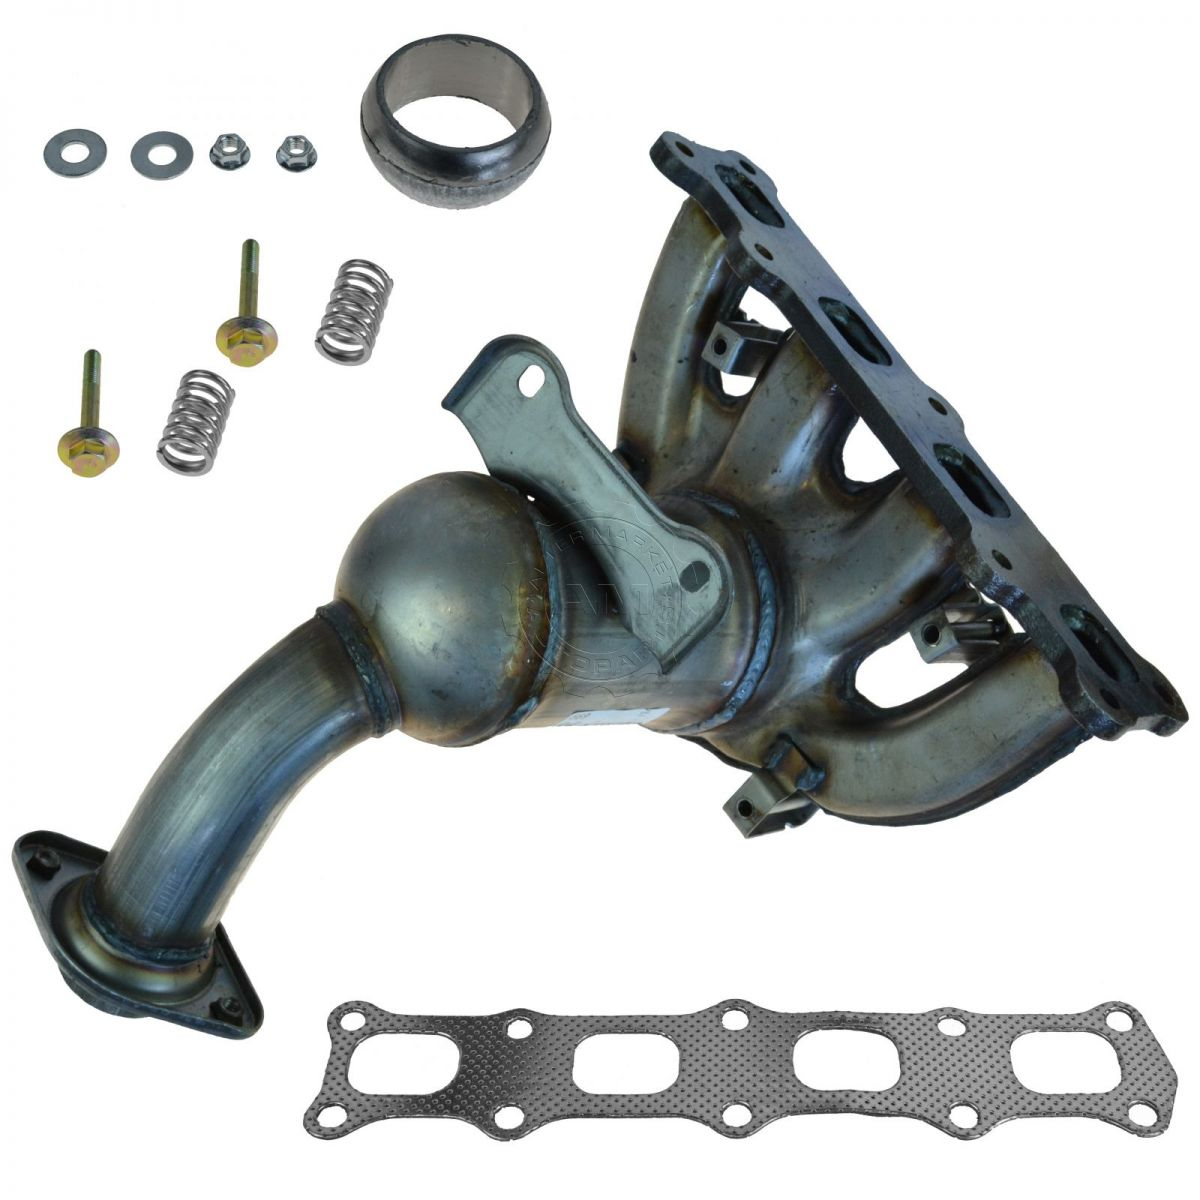 hight resolution of dorman exhaust manifold catalytic converter assembly for caliber compass patriot